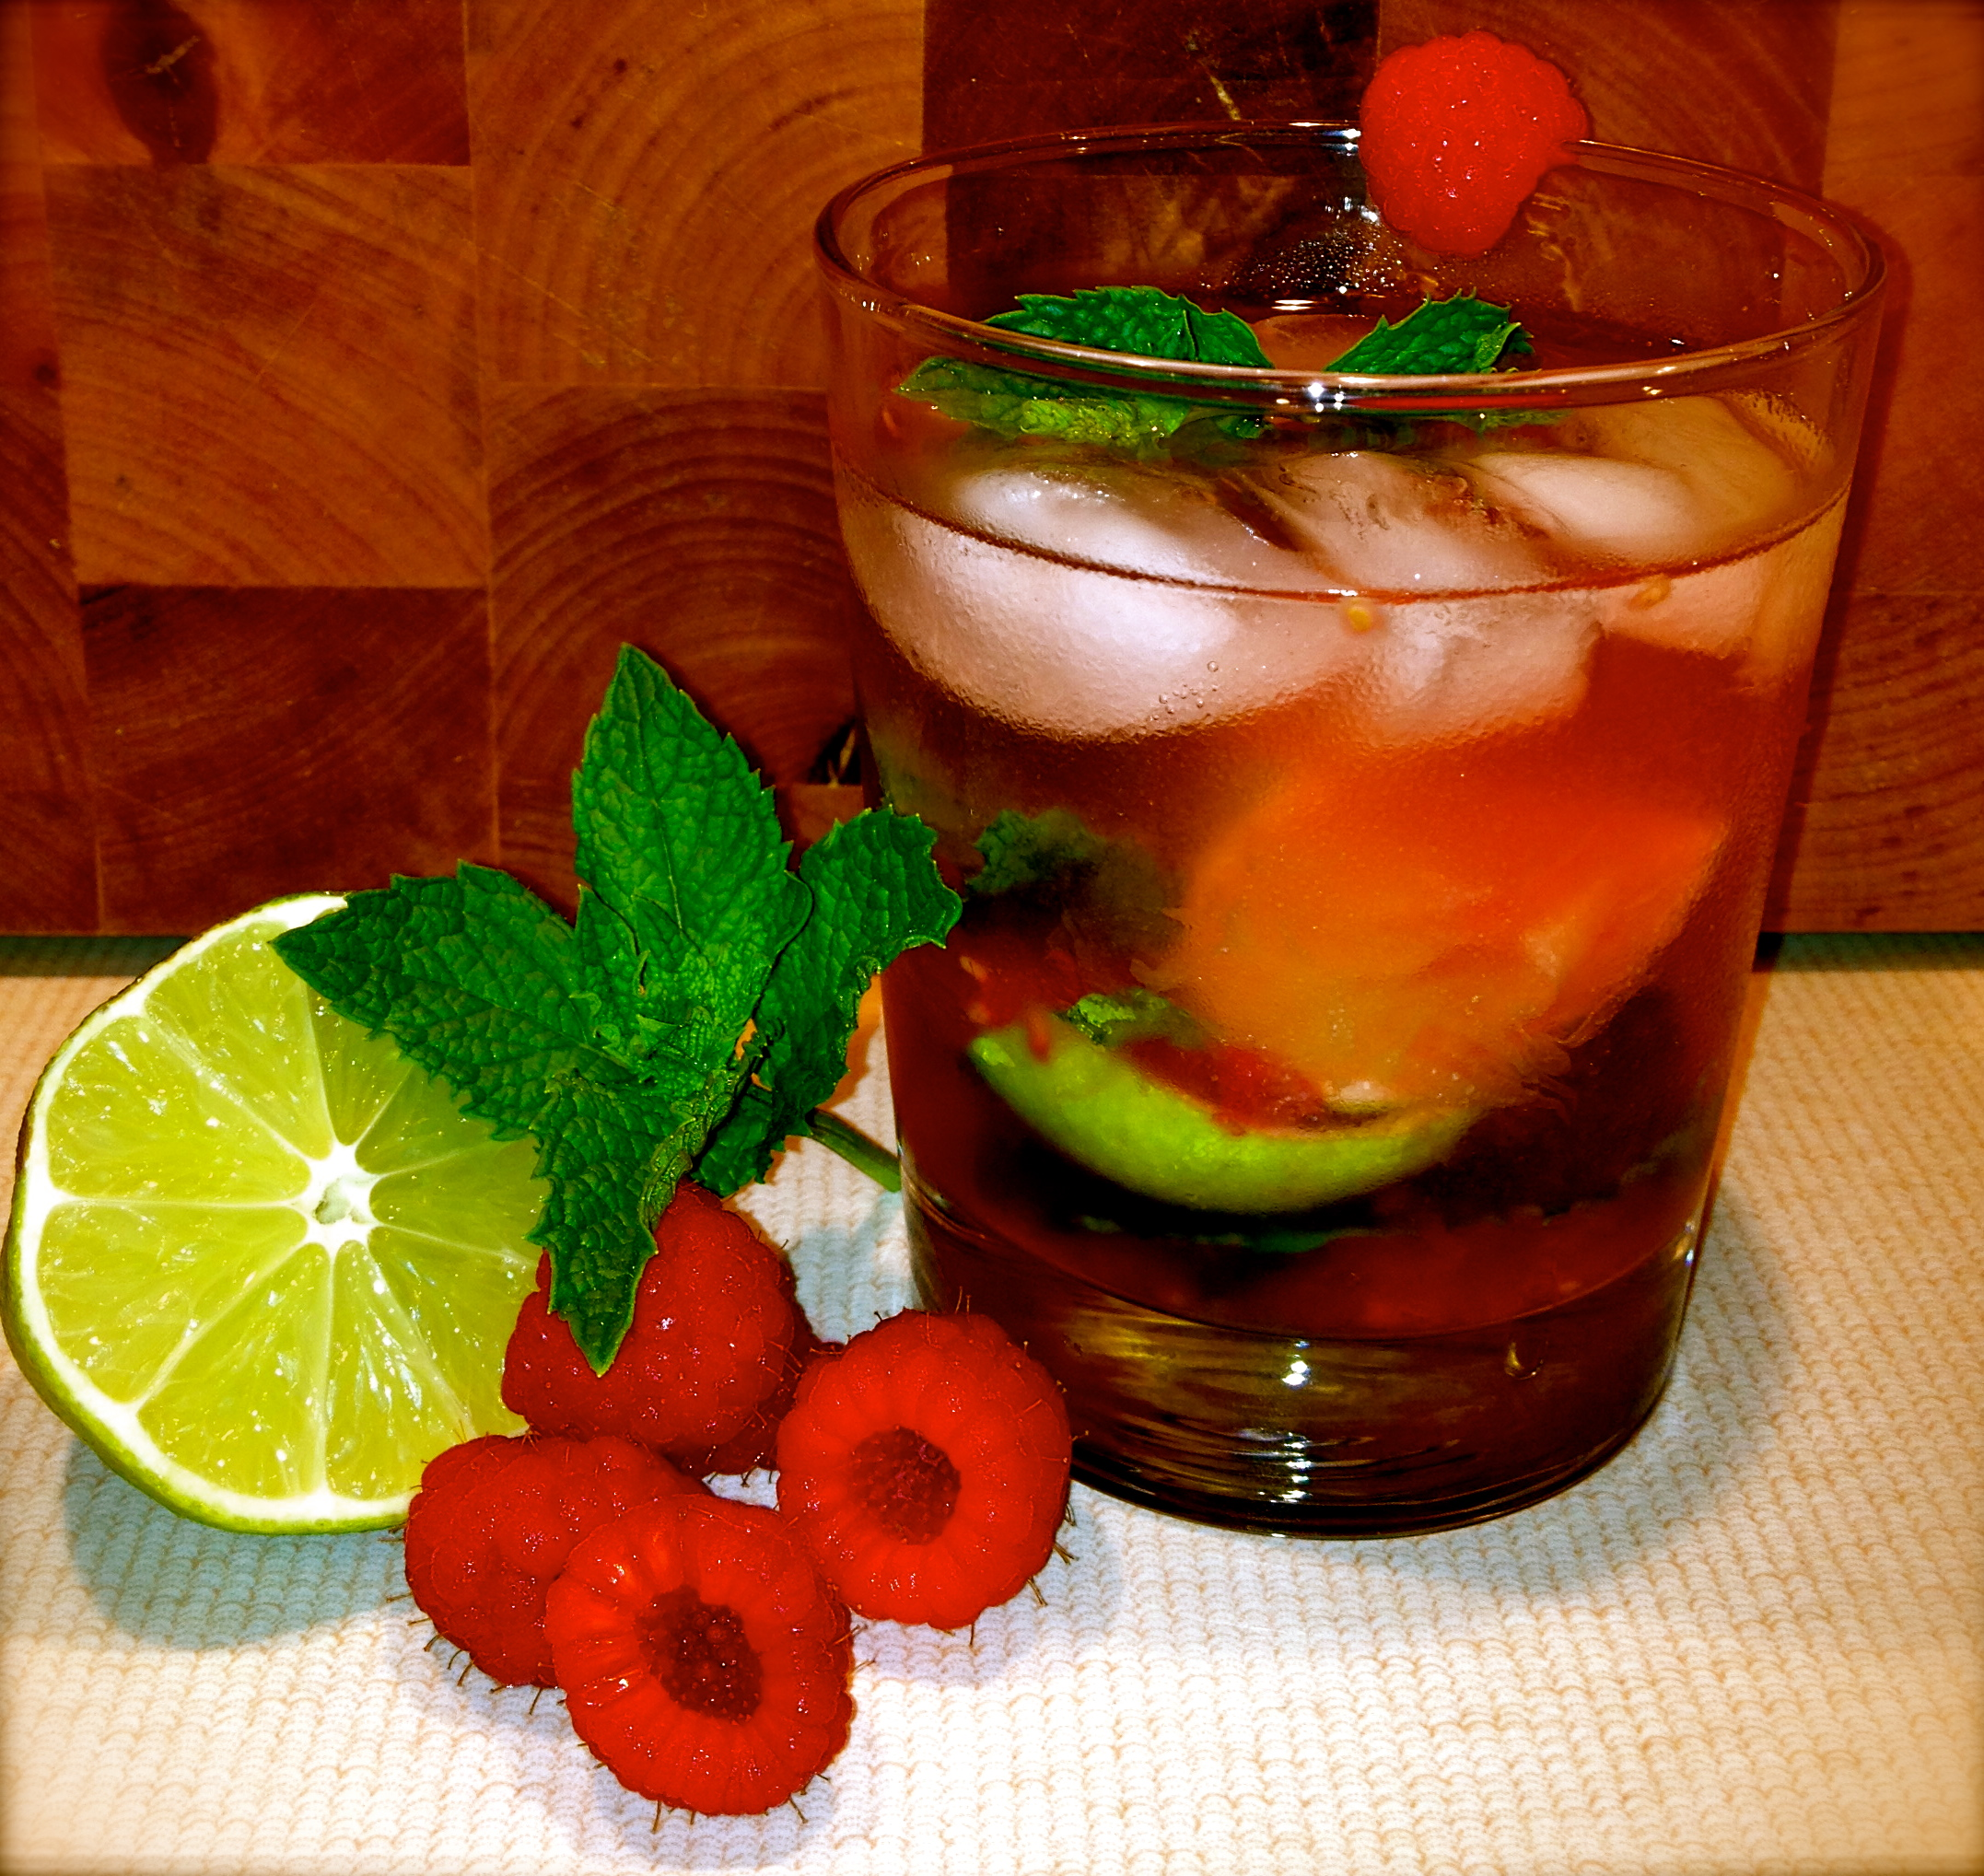 Make your own raspberry mojito. Photo credit: Myrna Rodríguez